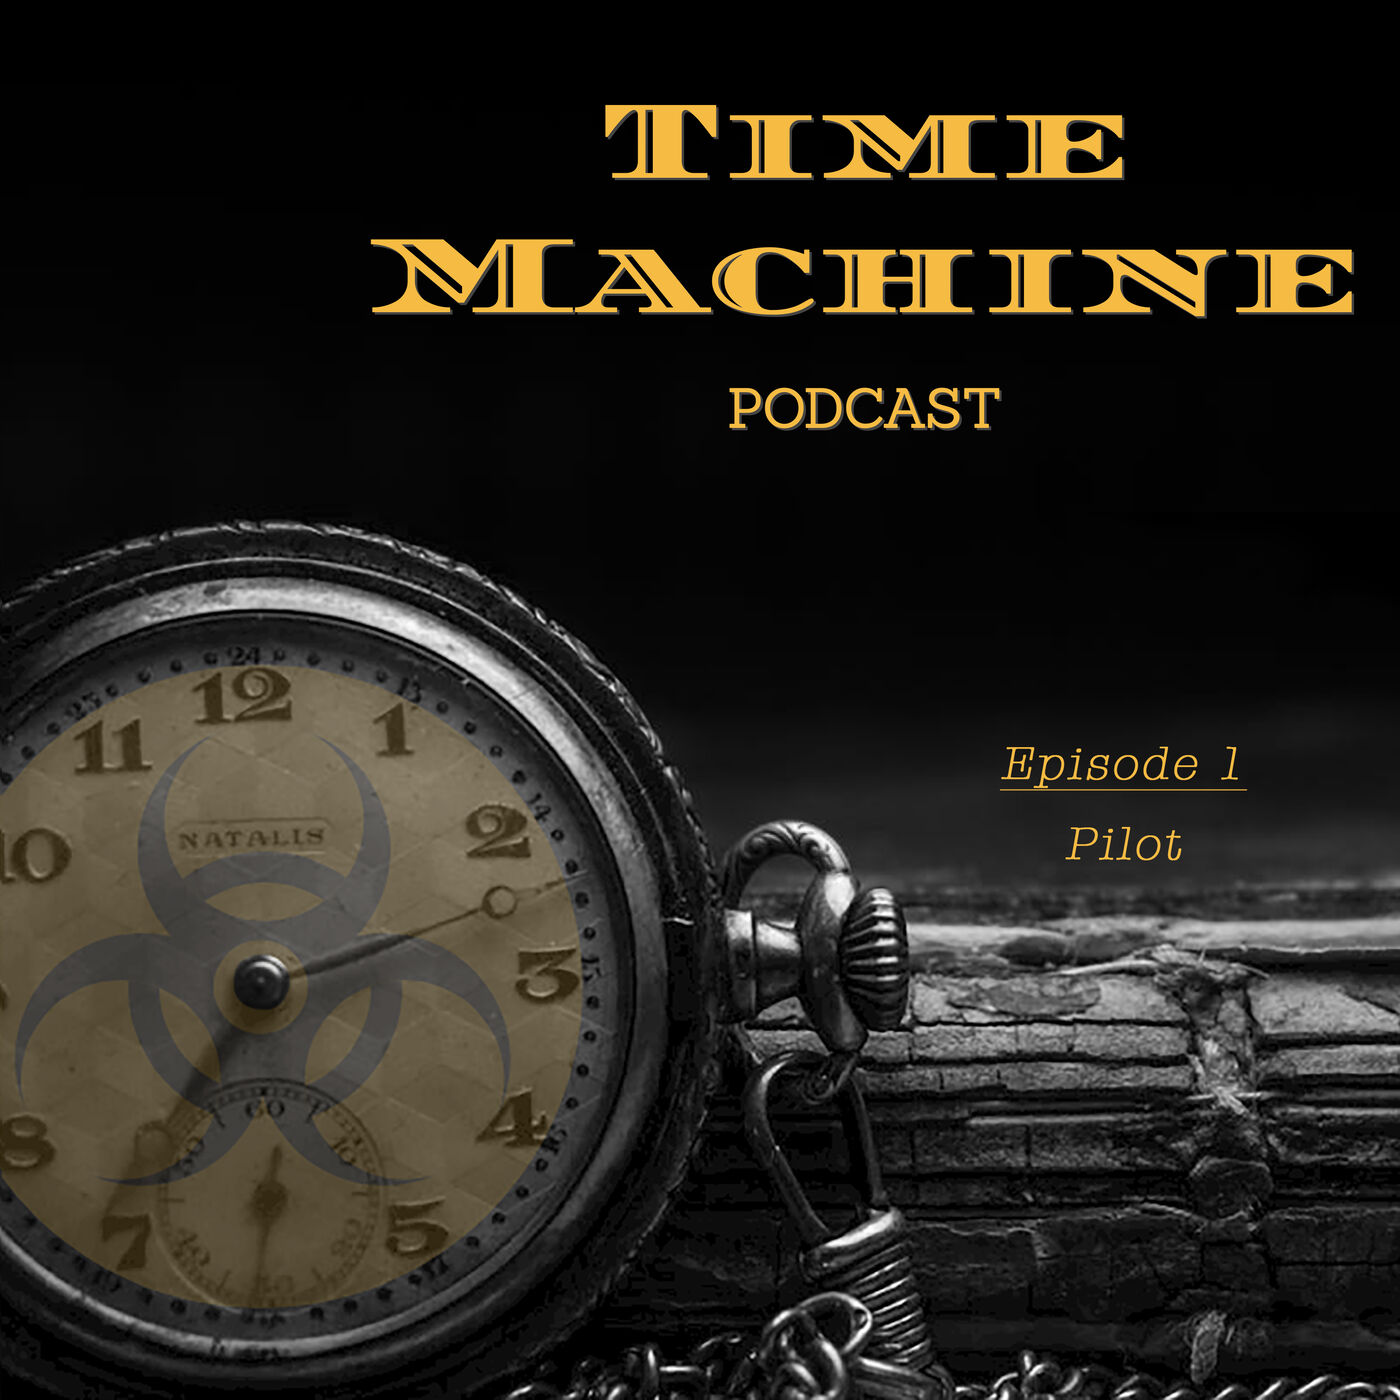 Time Machine Podcast - Pilot Episode